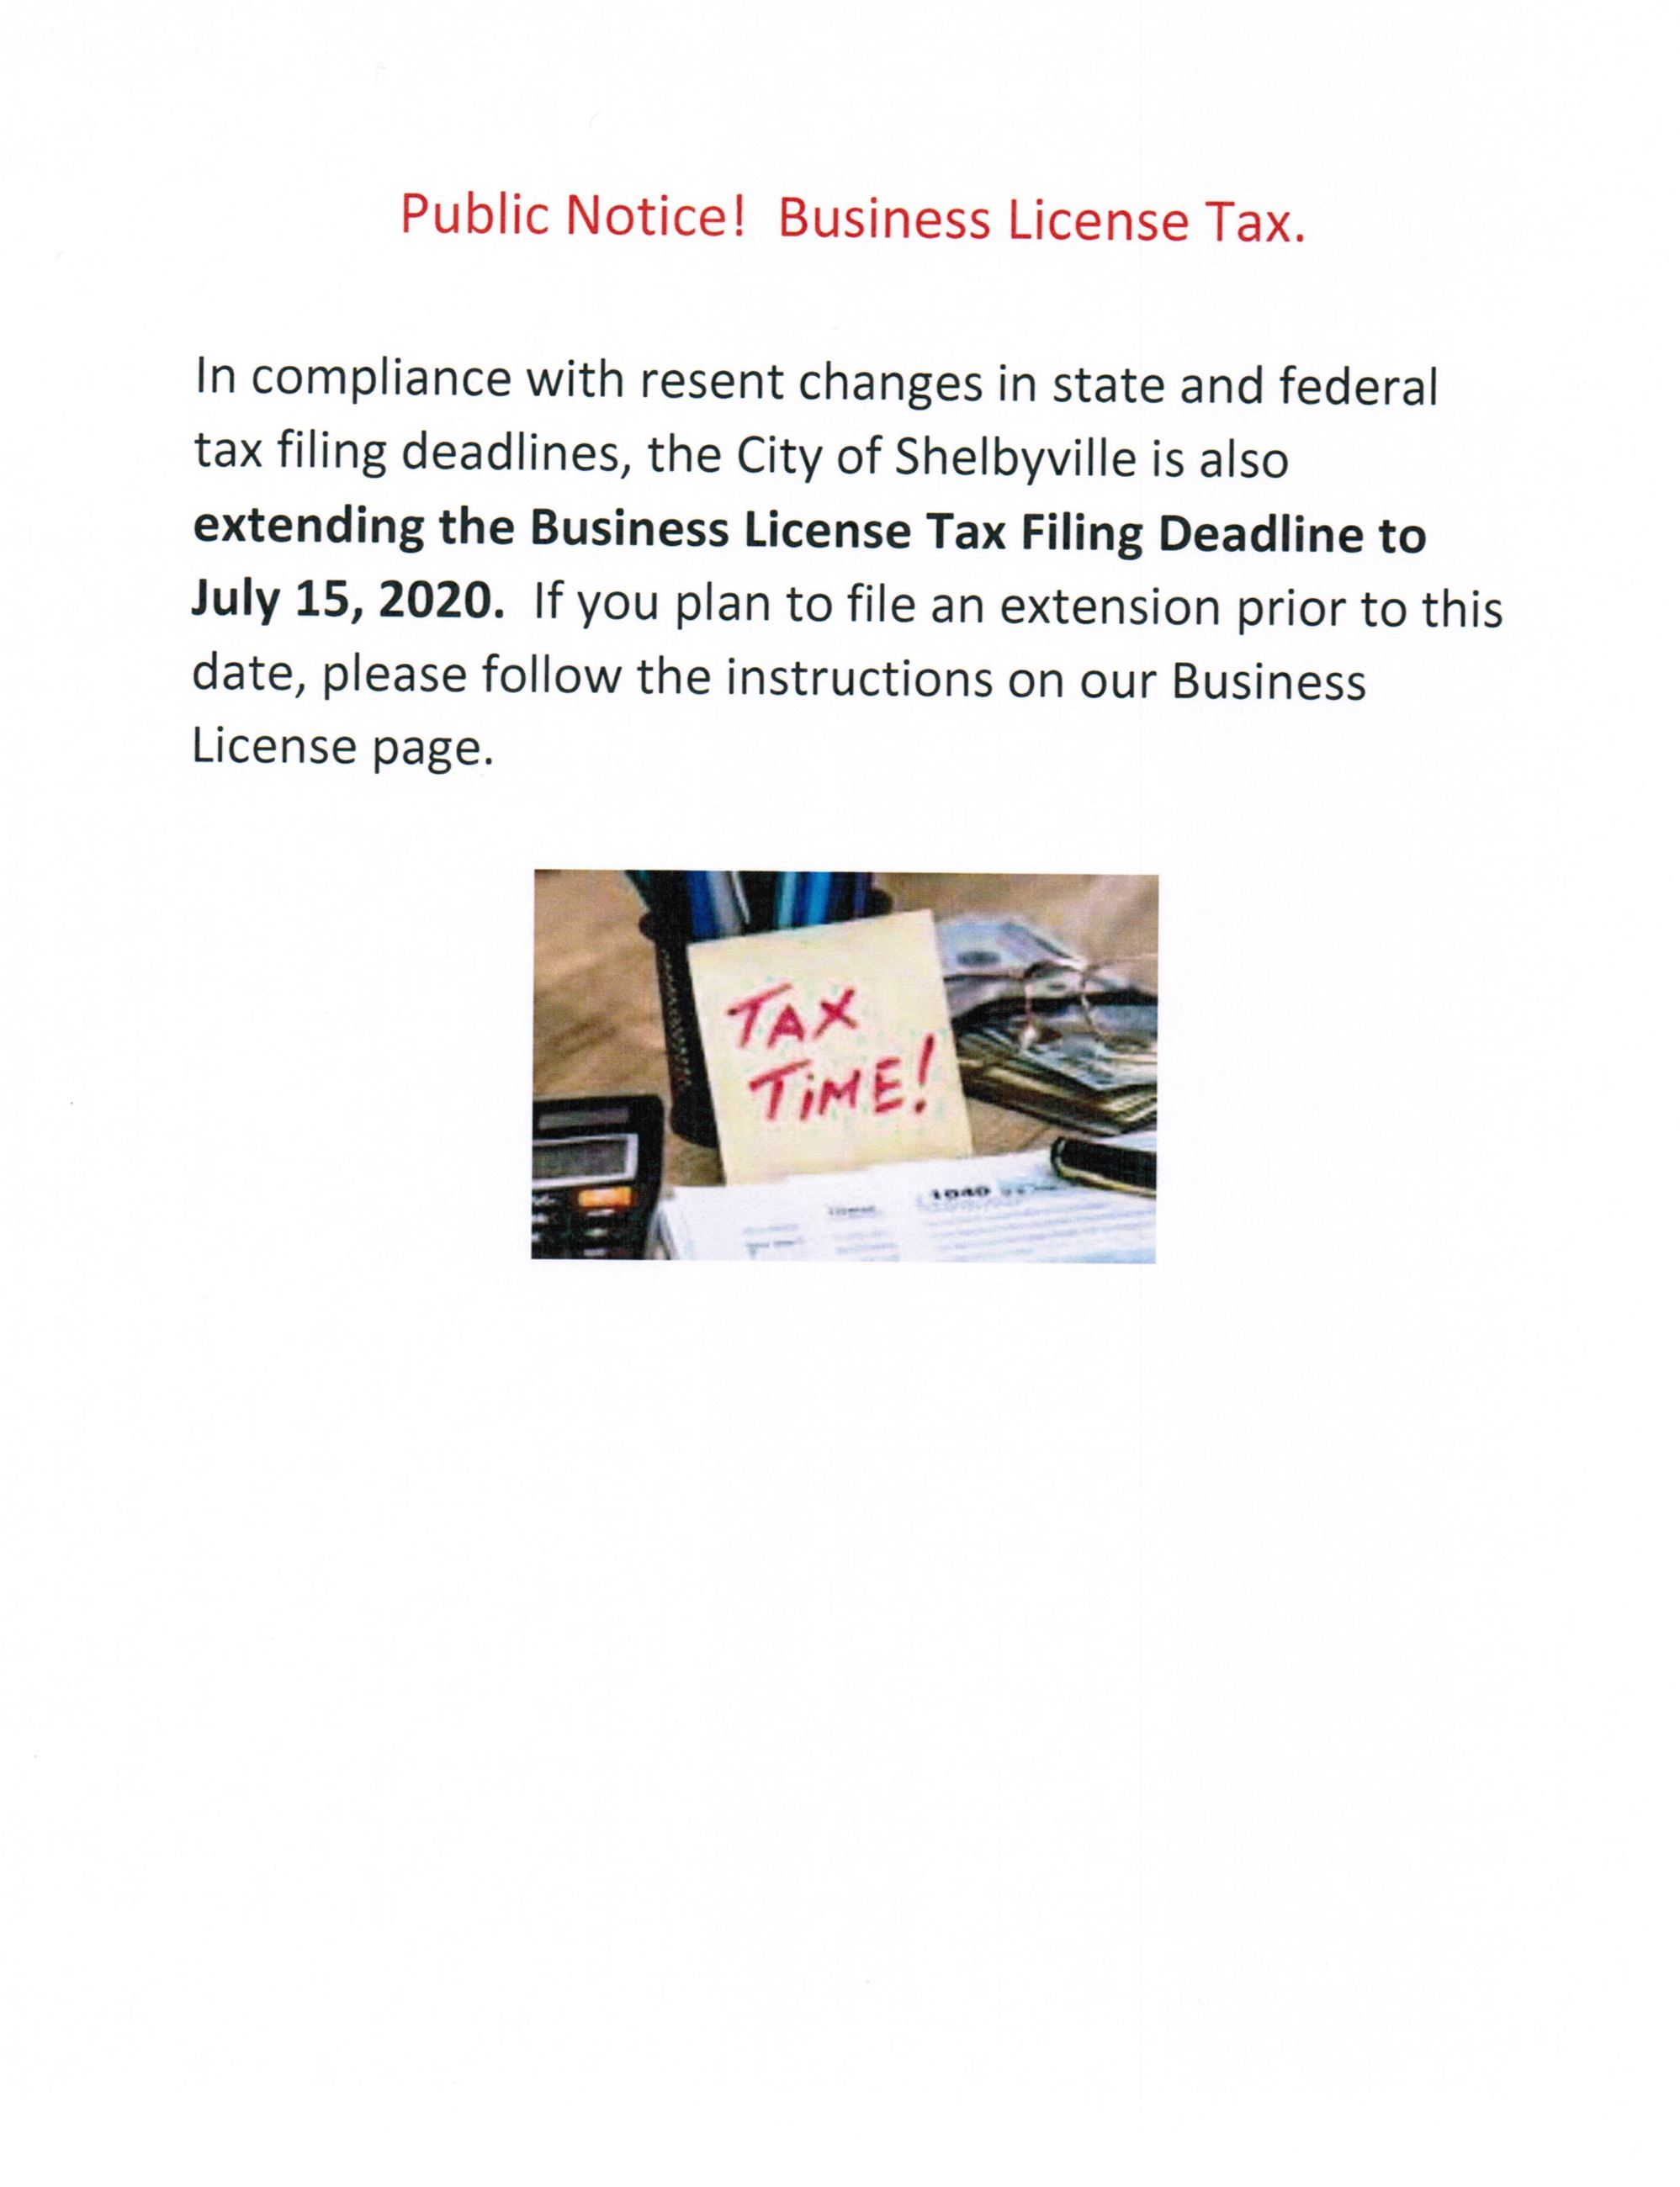 Business License Filing Extension